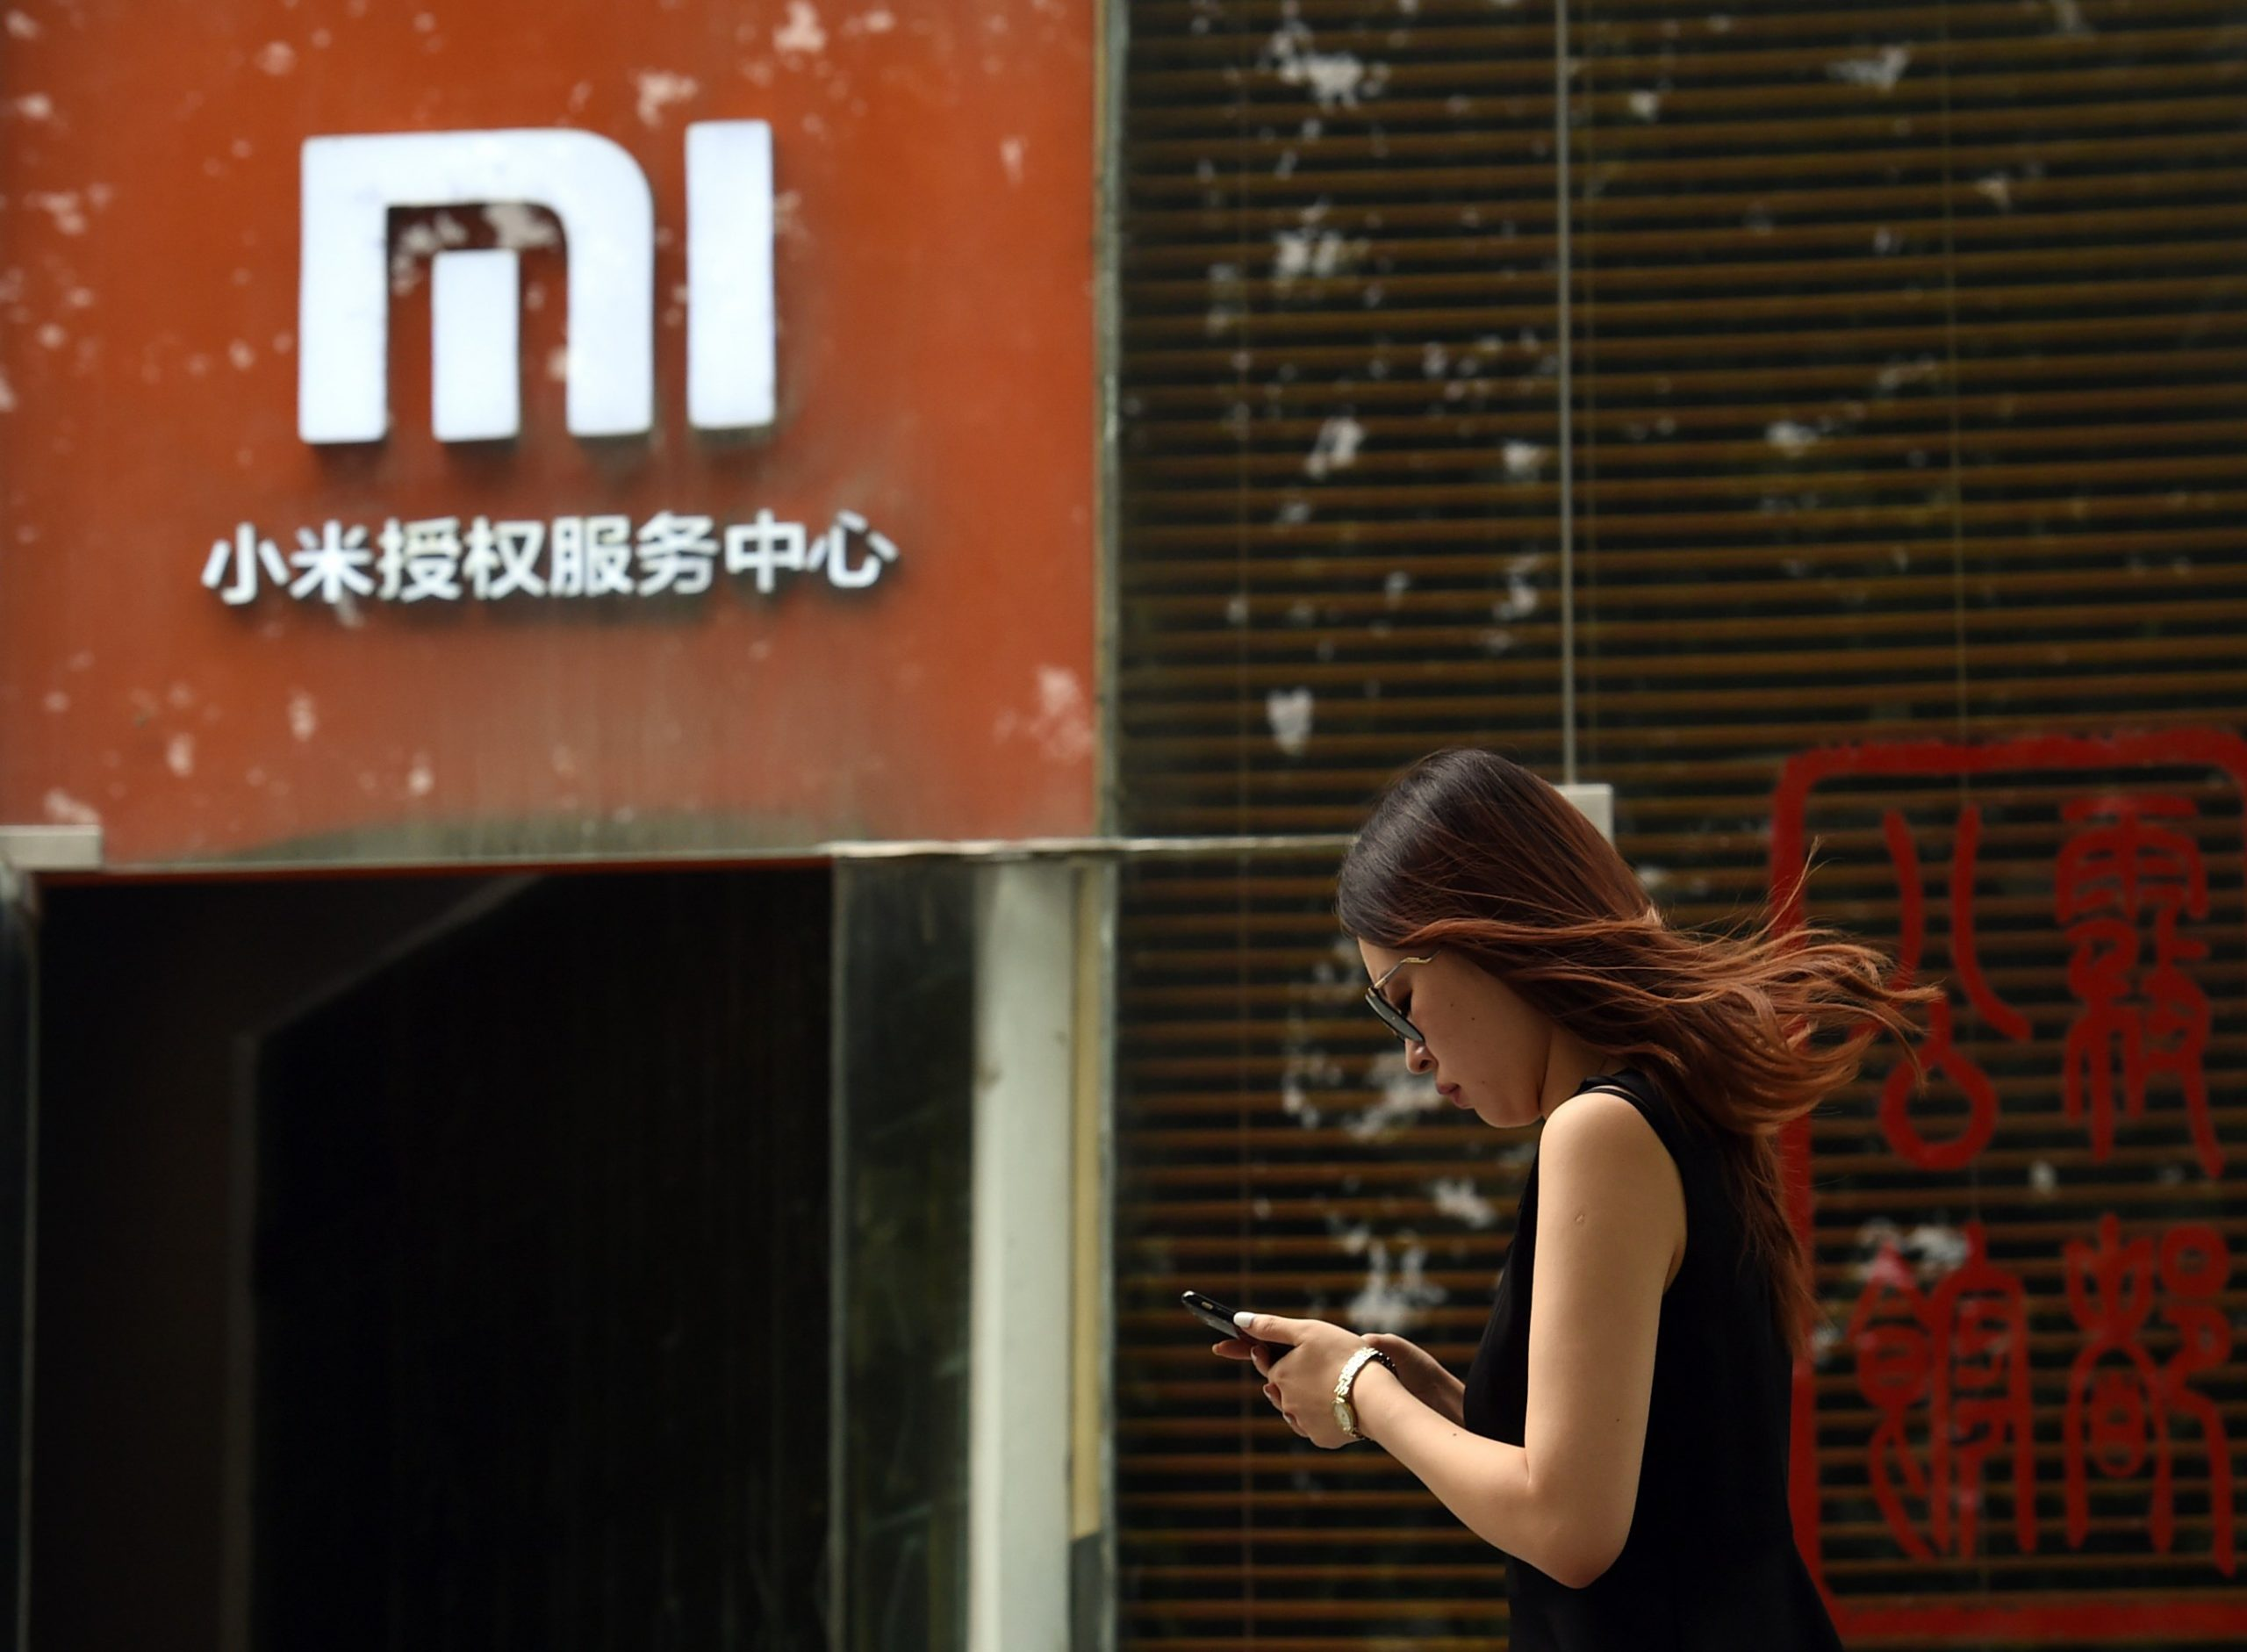 Xiaomi company spying users